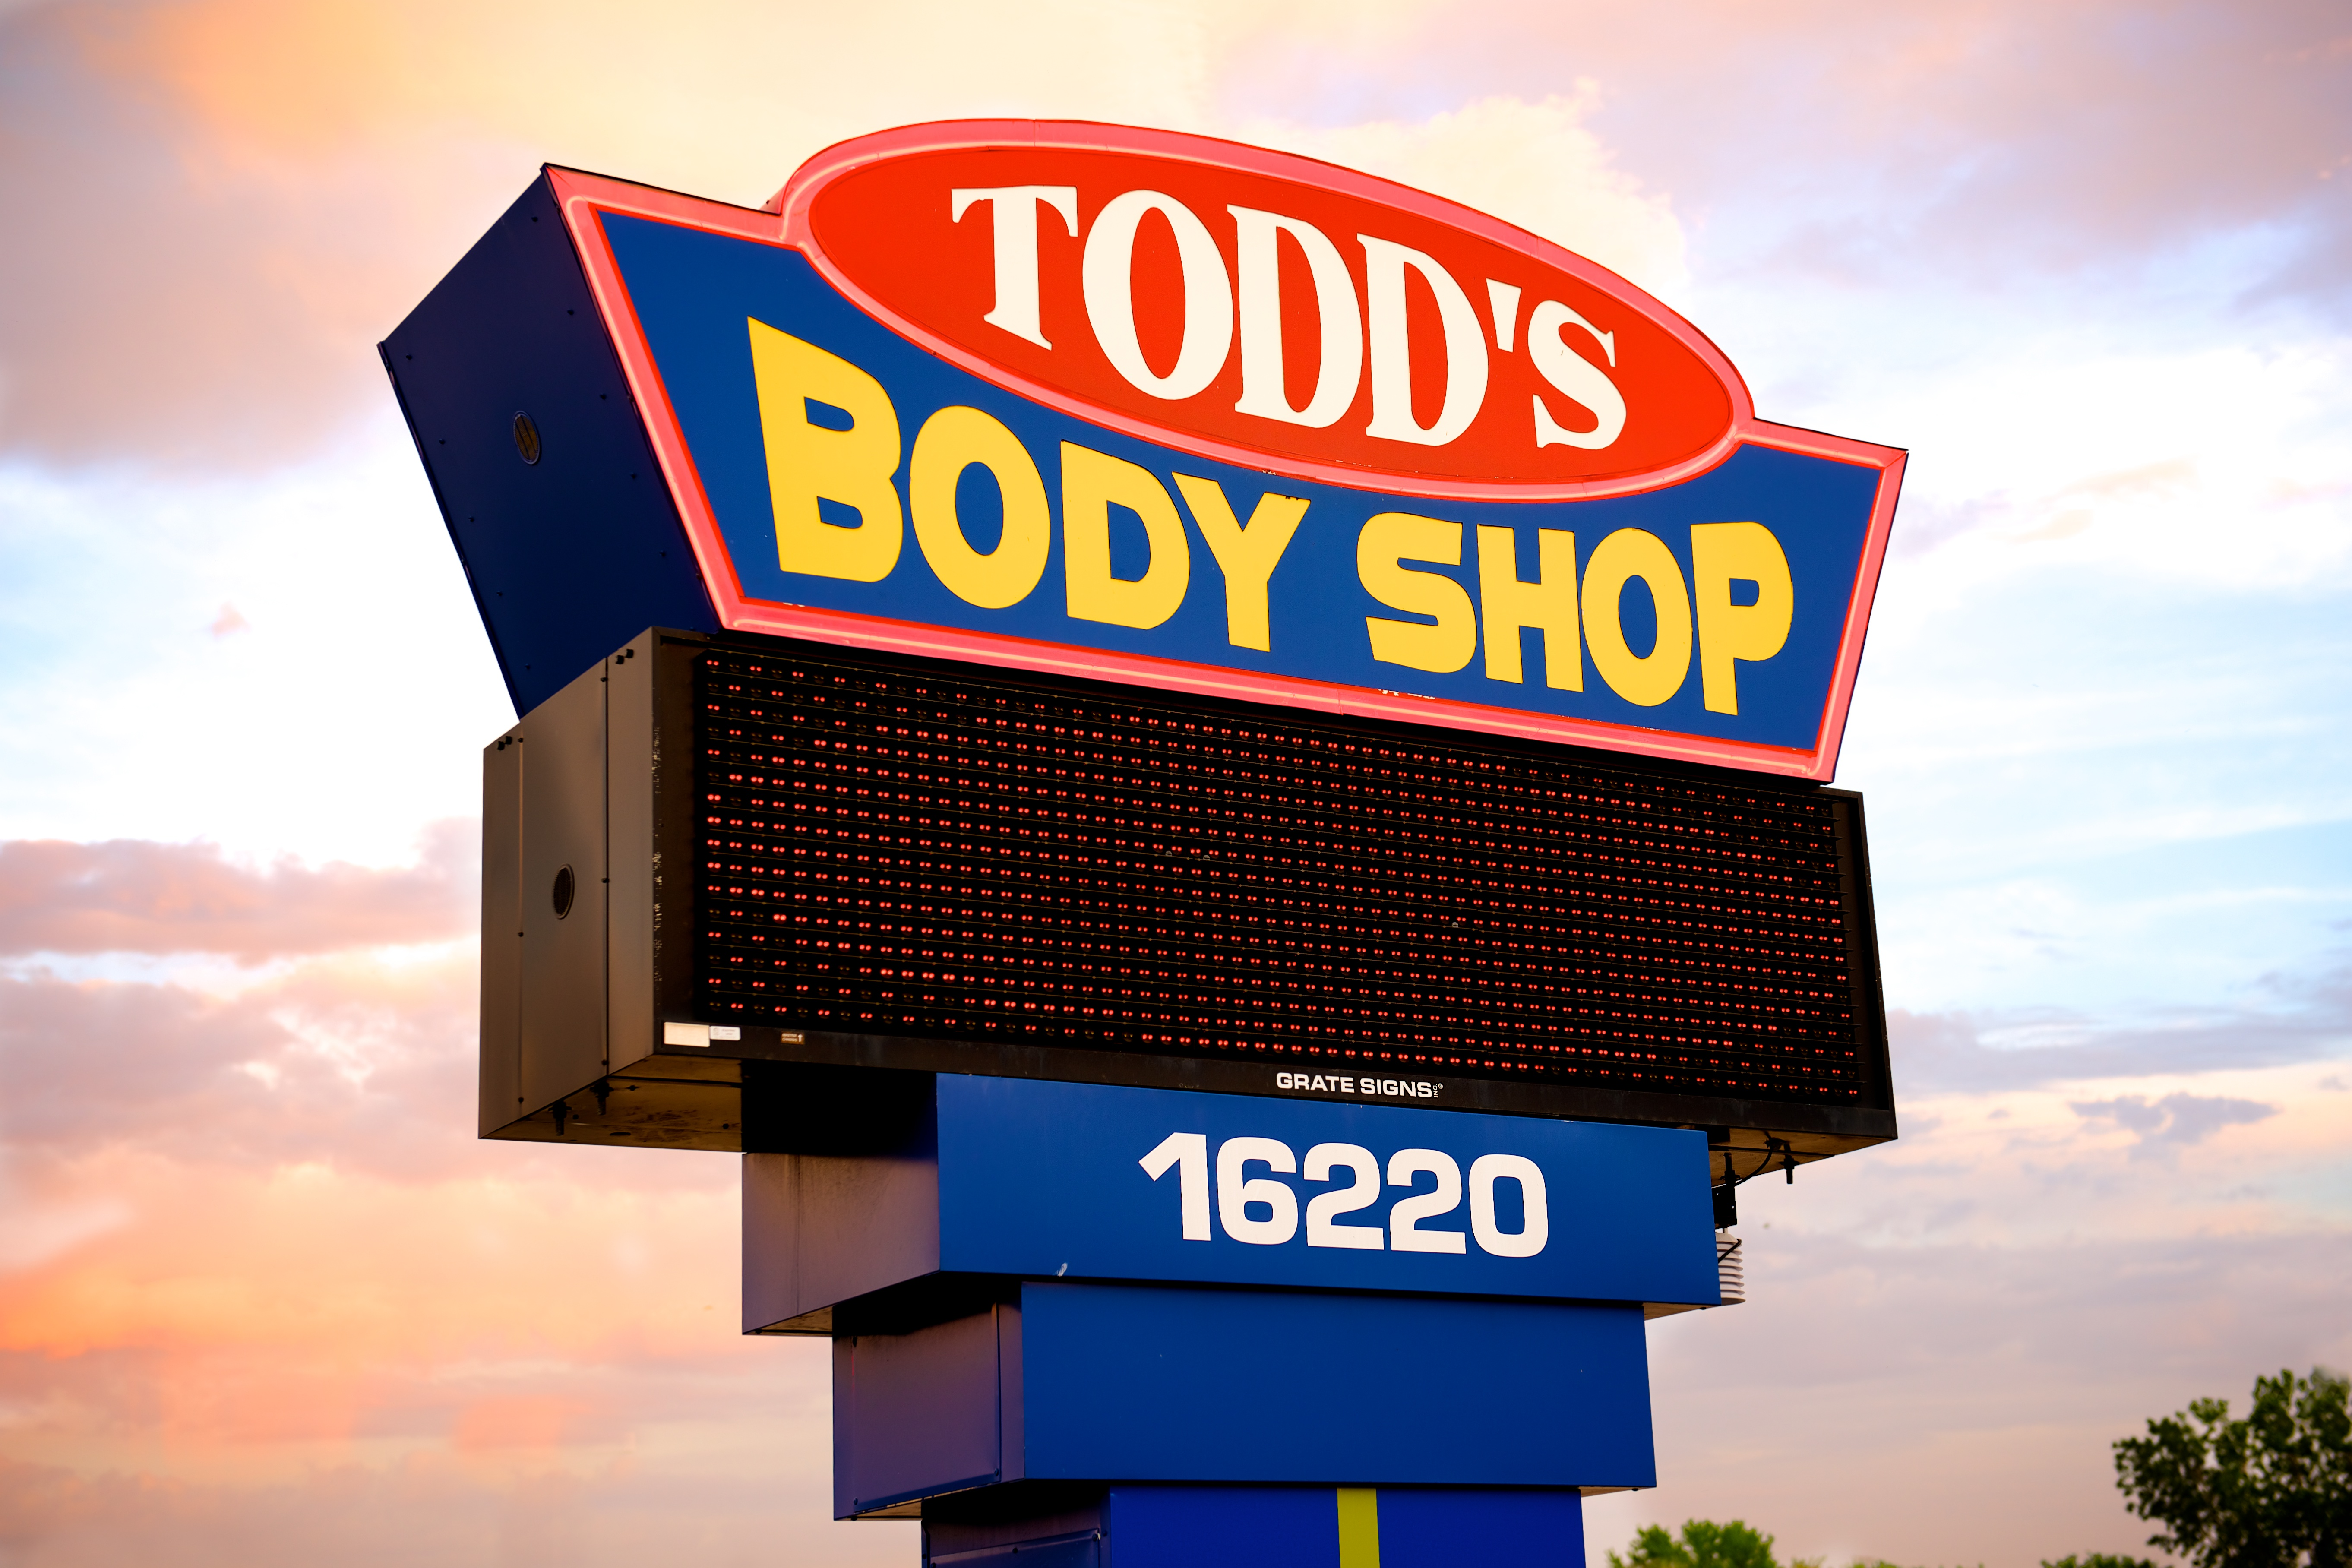 Todd's Body Shop Sign